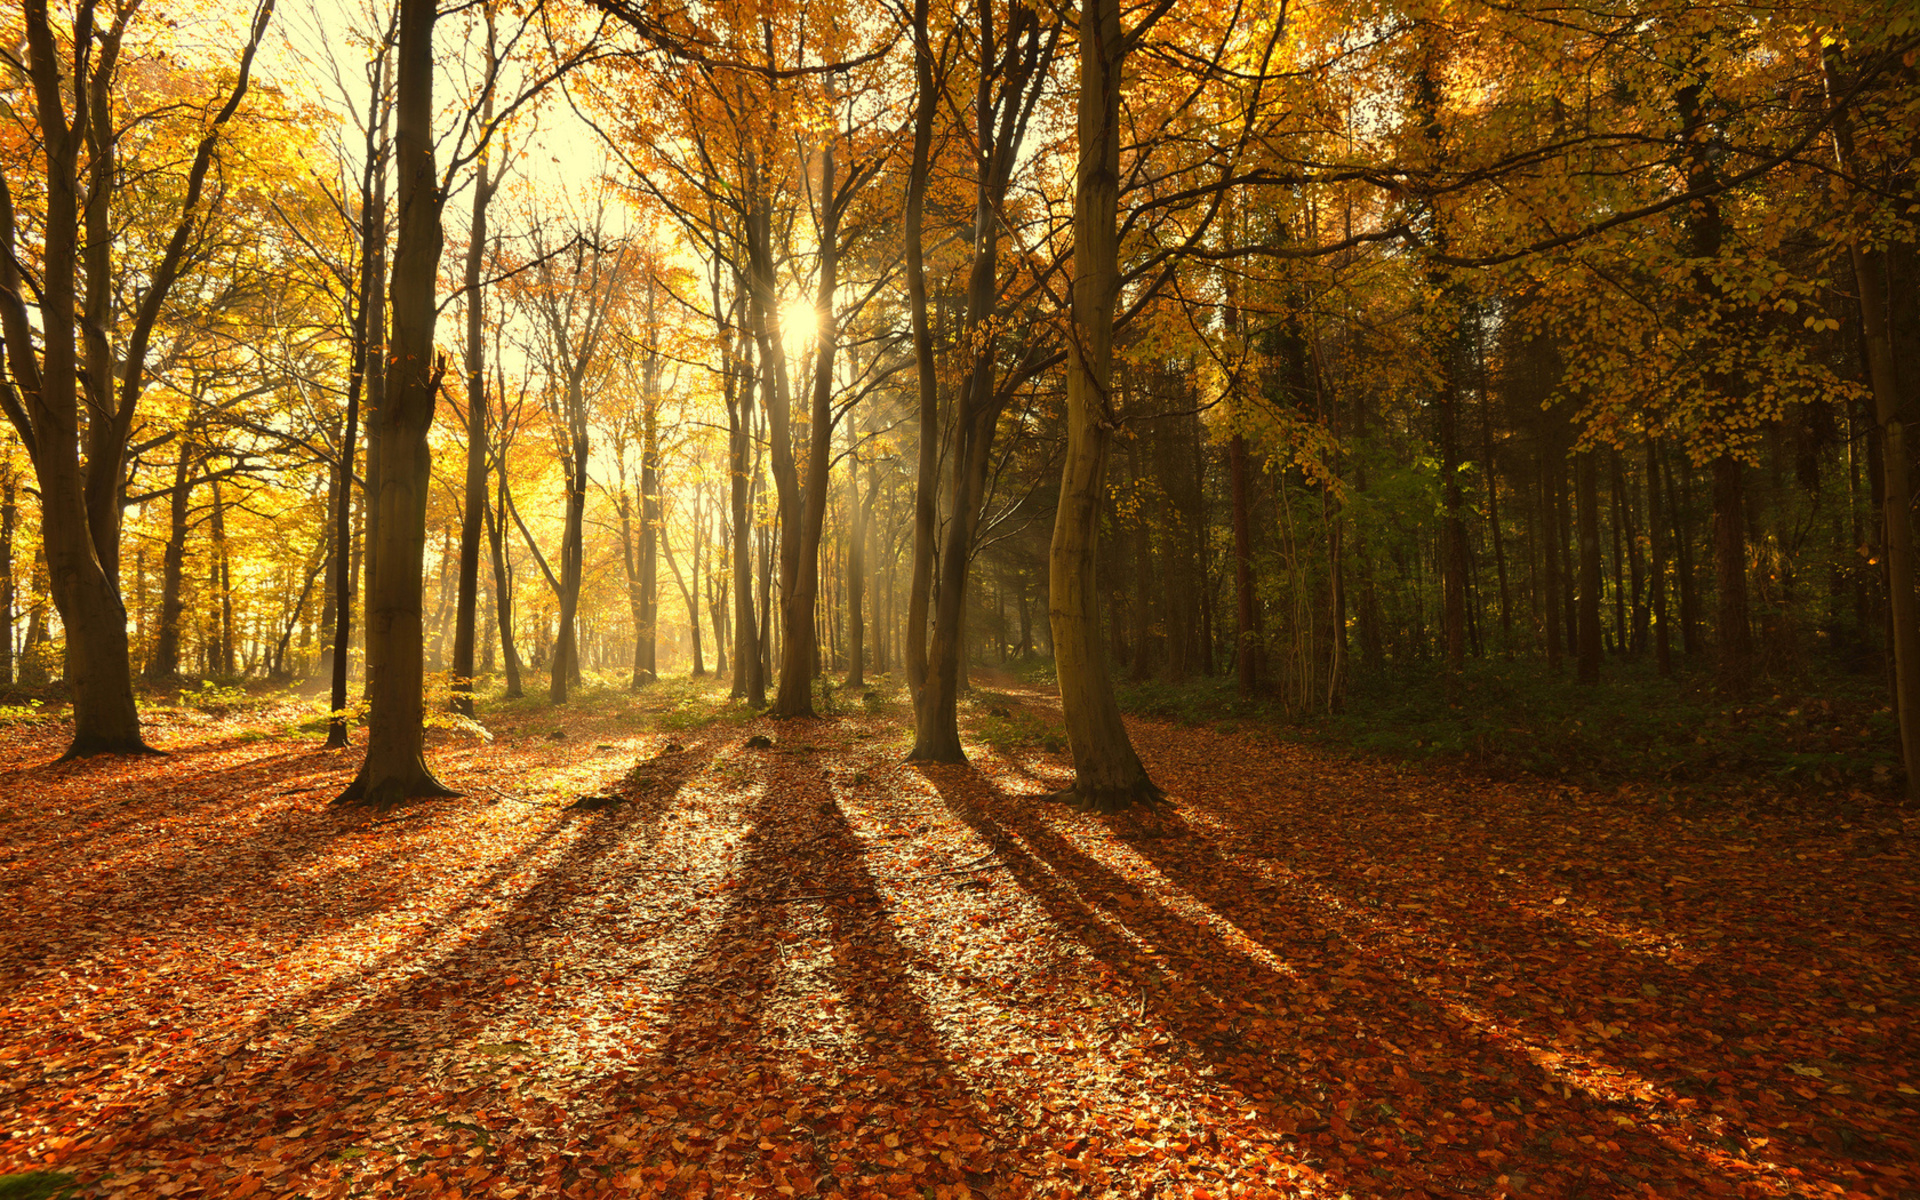 landscapes trees forests autumn fall leaves sunlight sunbeams